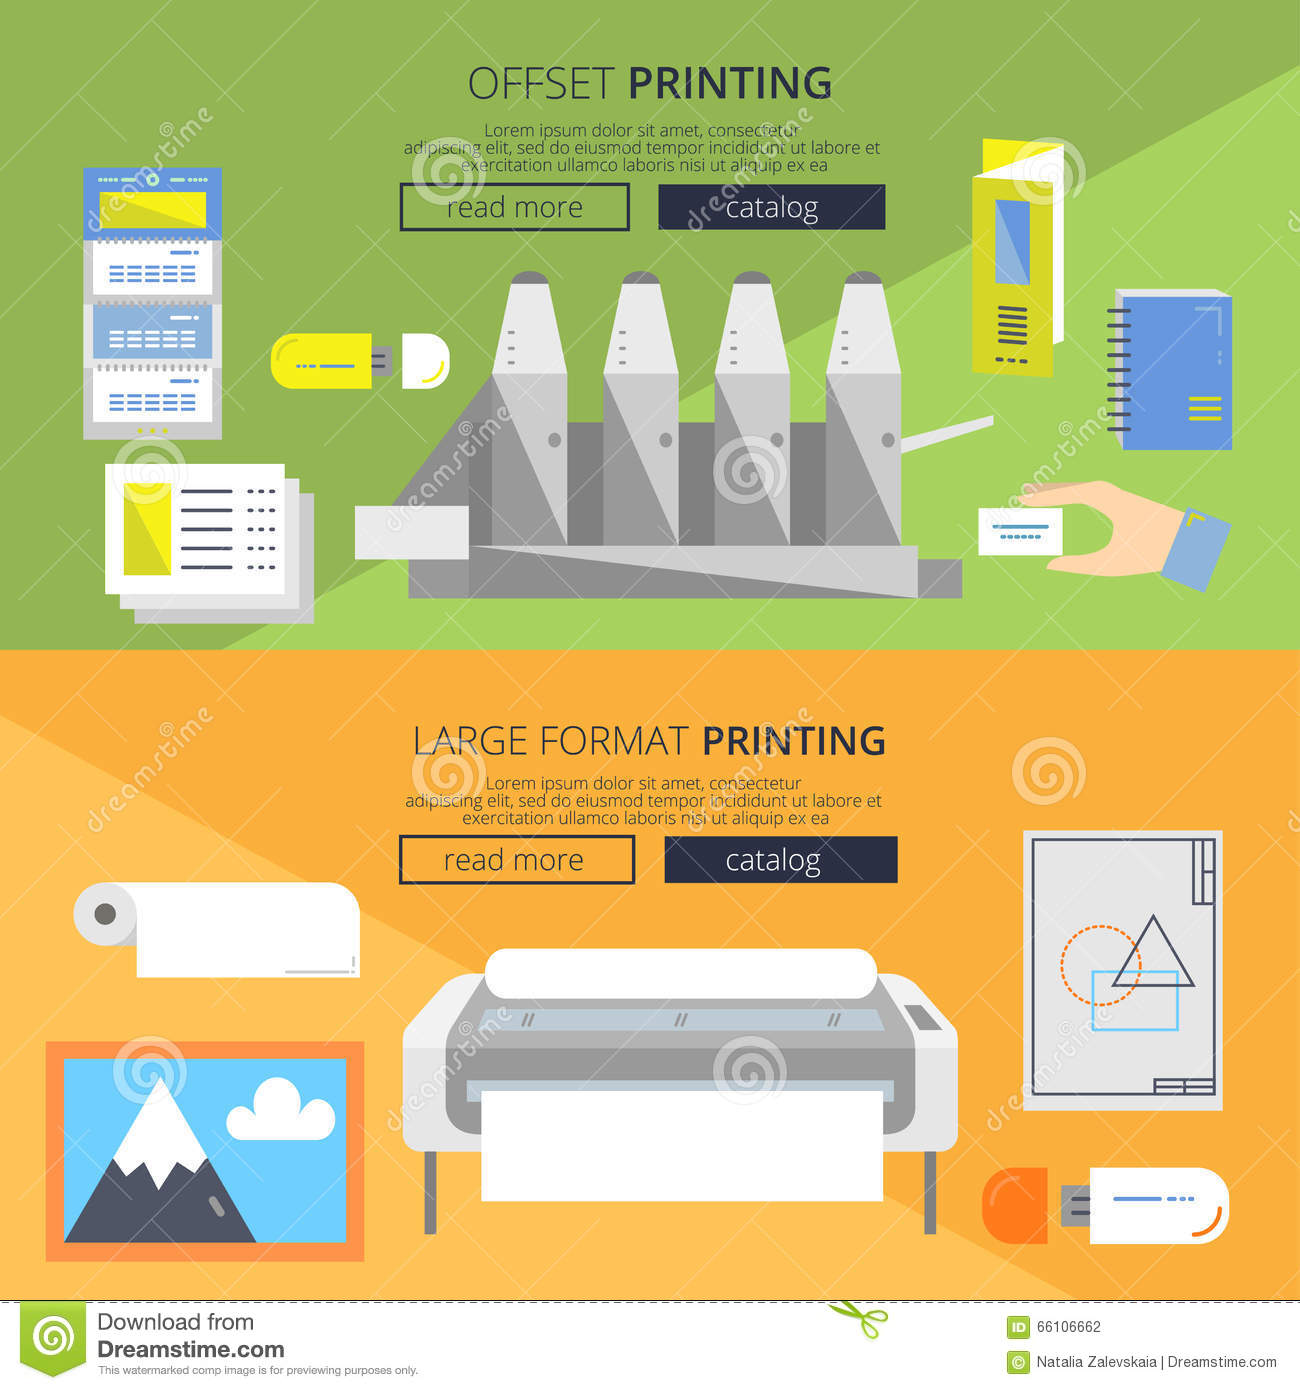 Flat Banners Offset Stock Vector Illustration Of Background 66106662 Printing Diagram Press